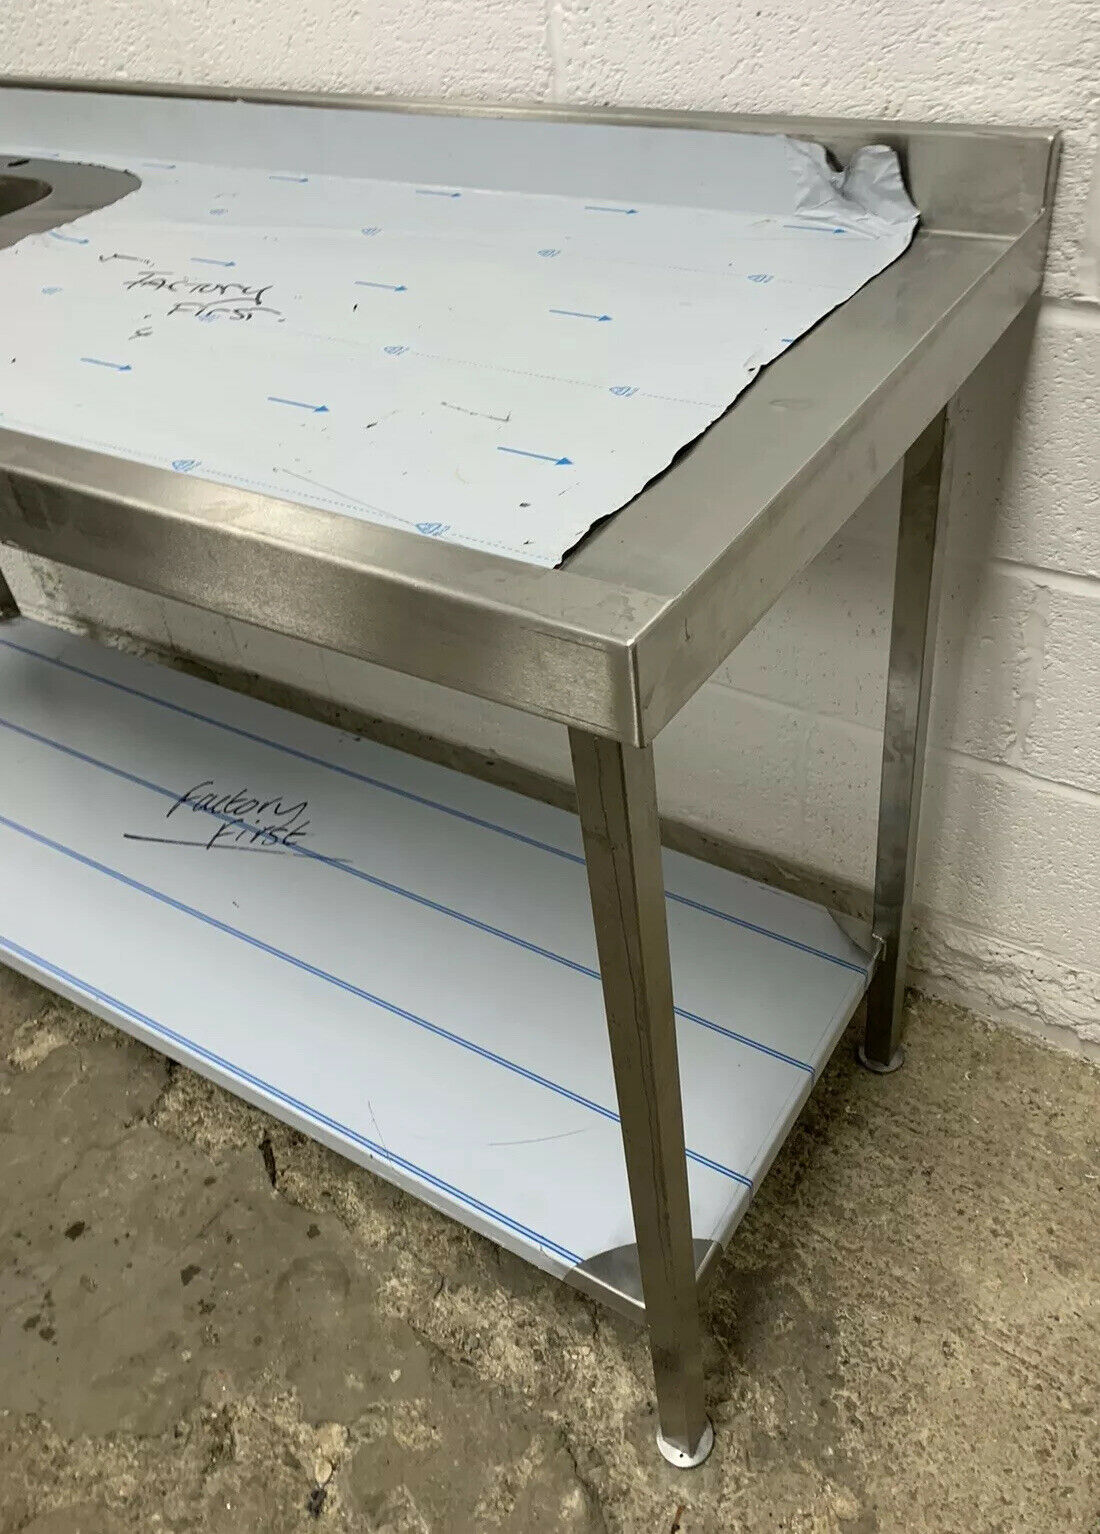 Lot 24 - Stainless Steel Single Bowl Sink With Righthand Drainer And Upstand